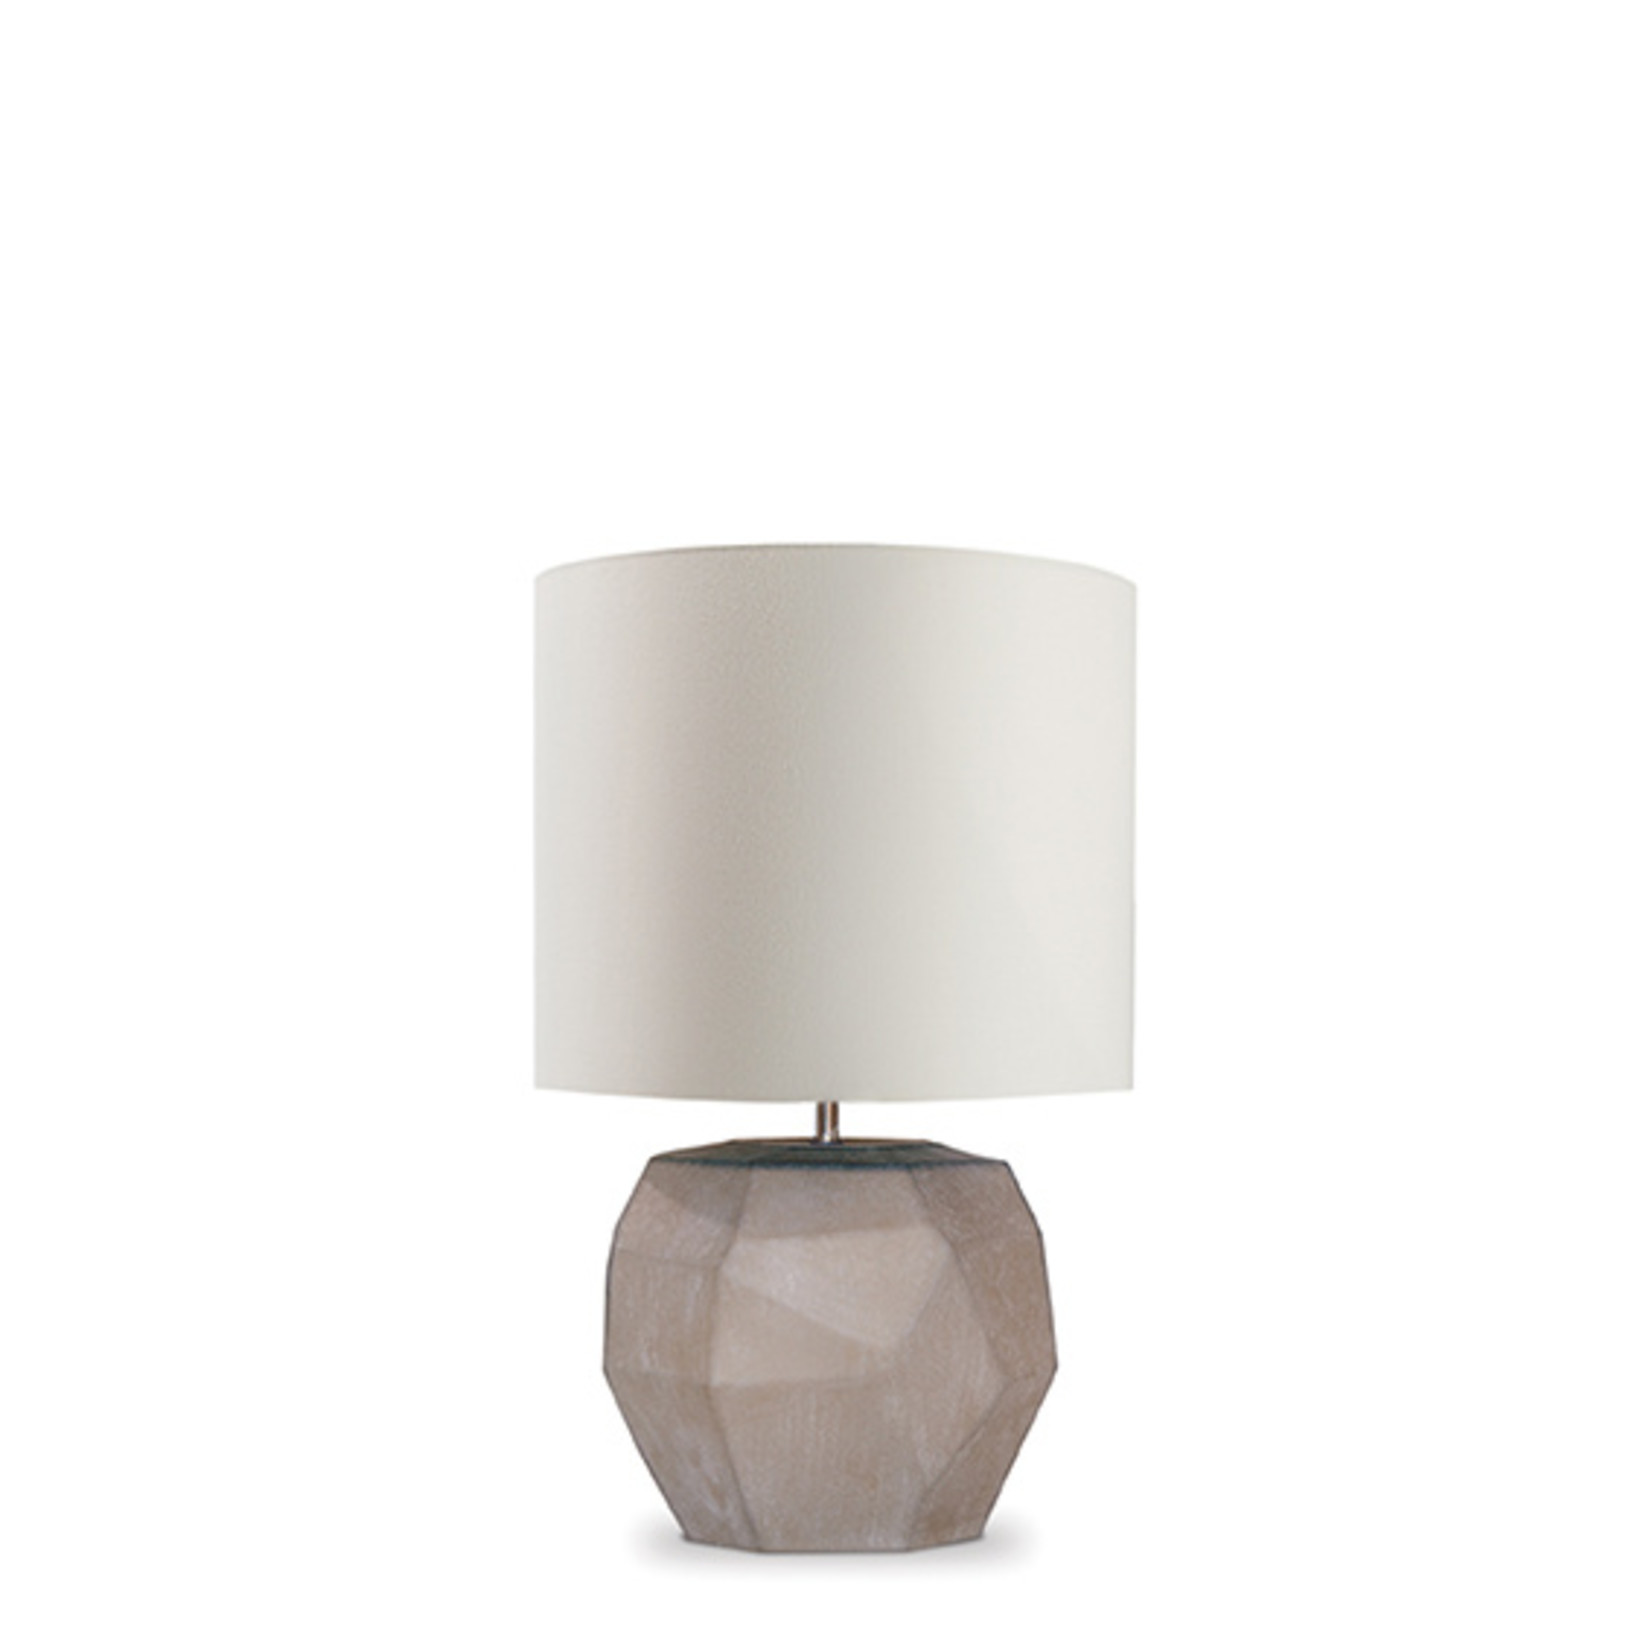 Guaxs Table lamp Cubistic Round | Smokegrey